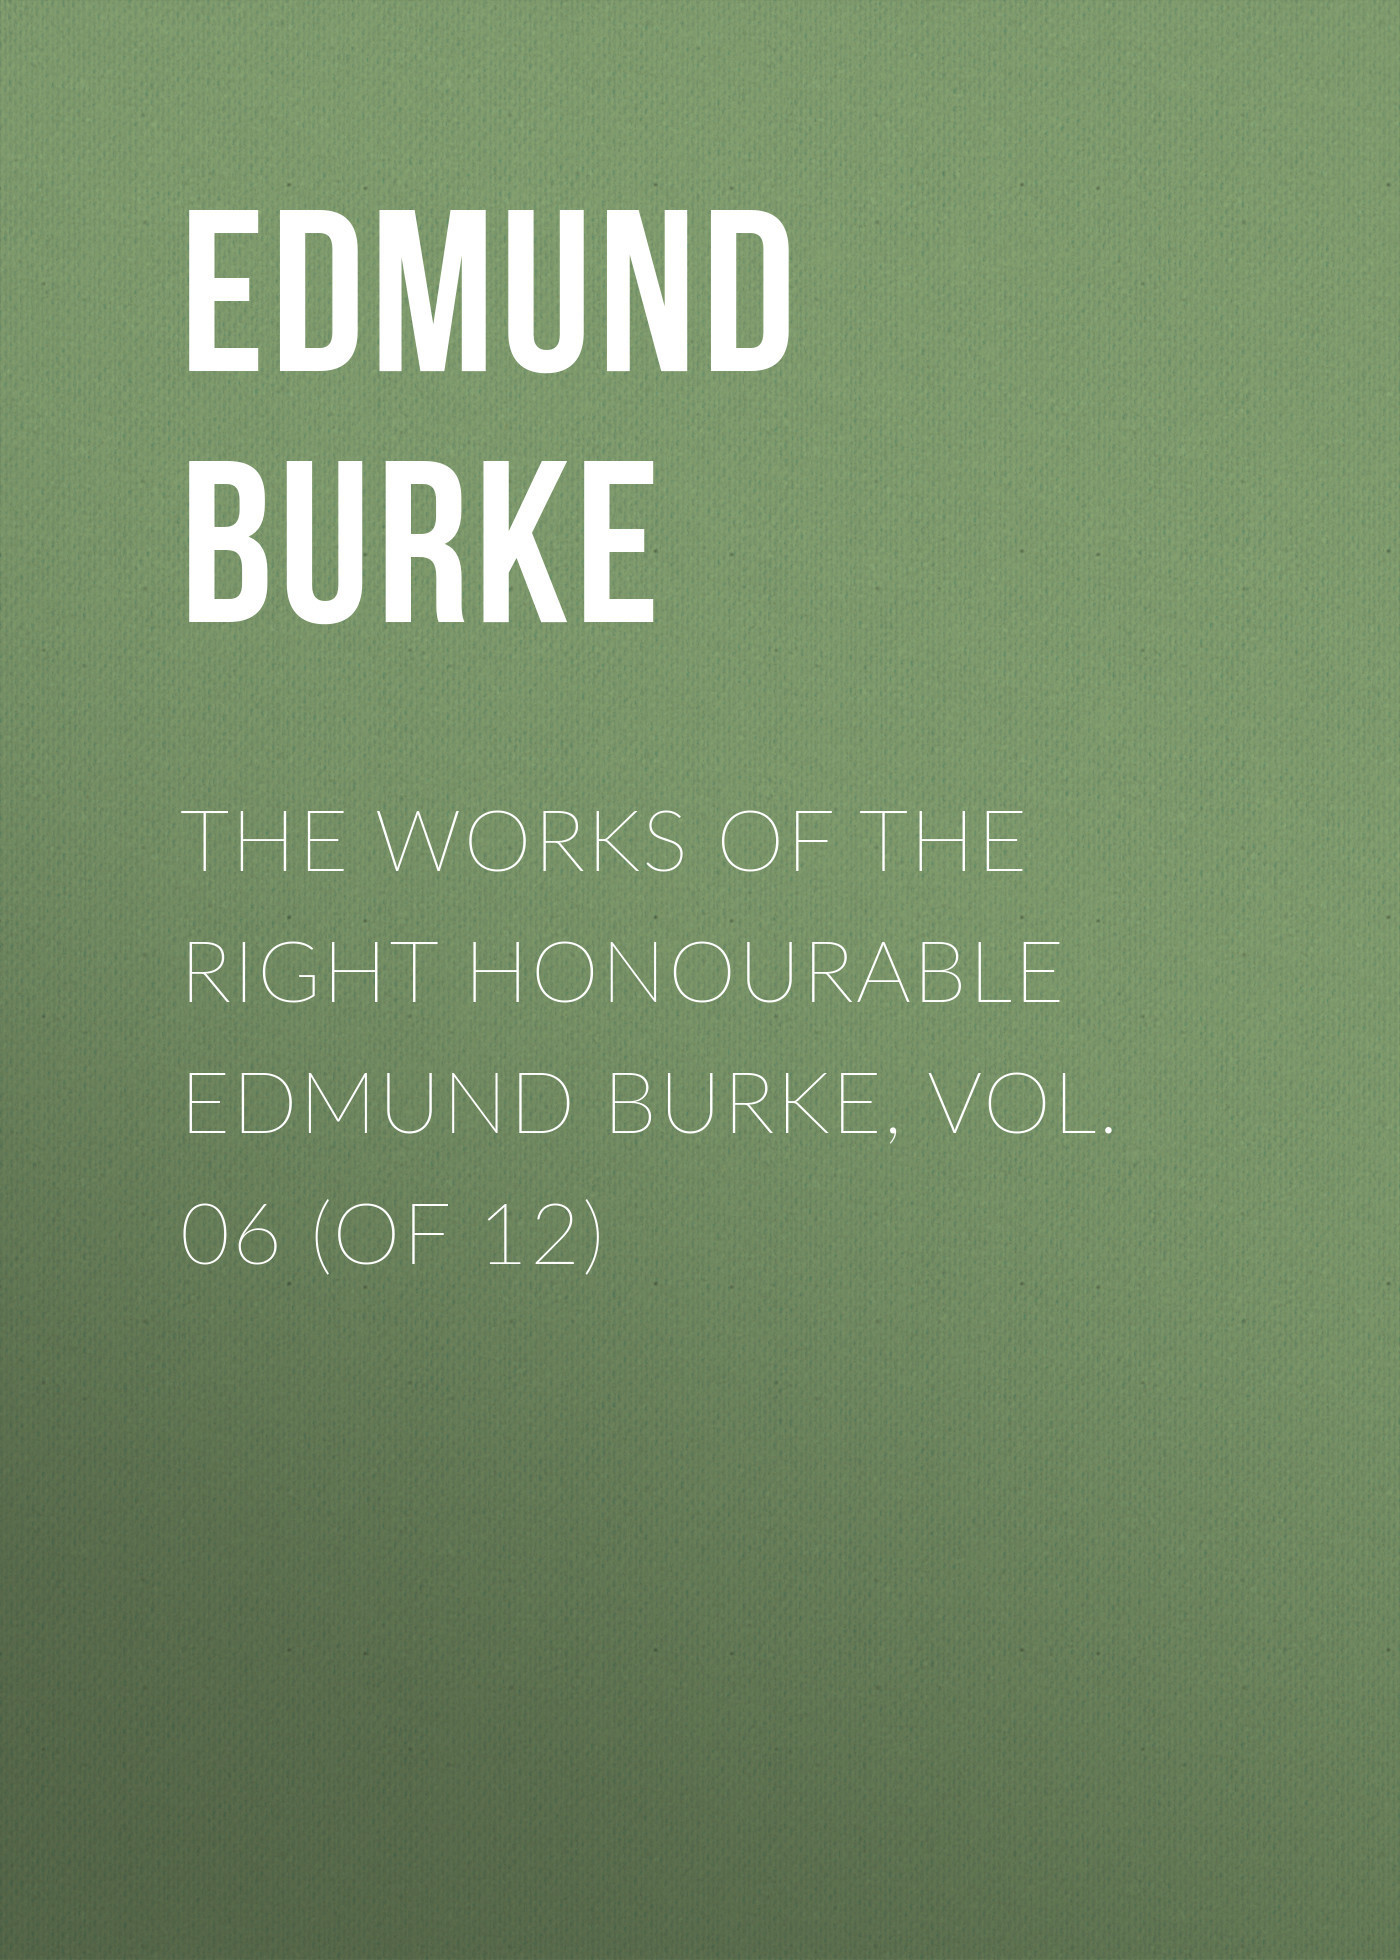 Edmund Burke The Works of the Right Honourable Edmund Burke, Vol. 06 (of 12) edmund burke the works of the right honourable edmund burke vol 09 of 12